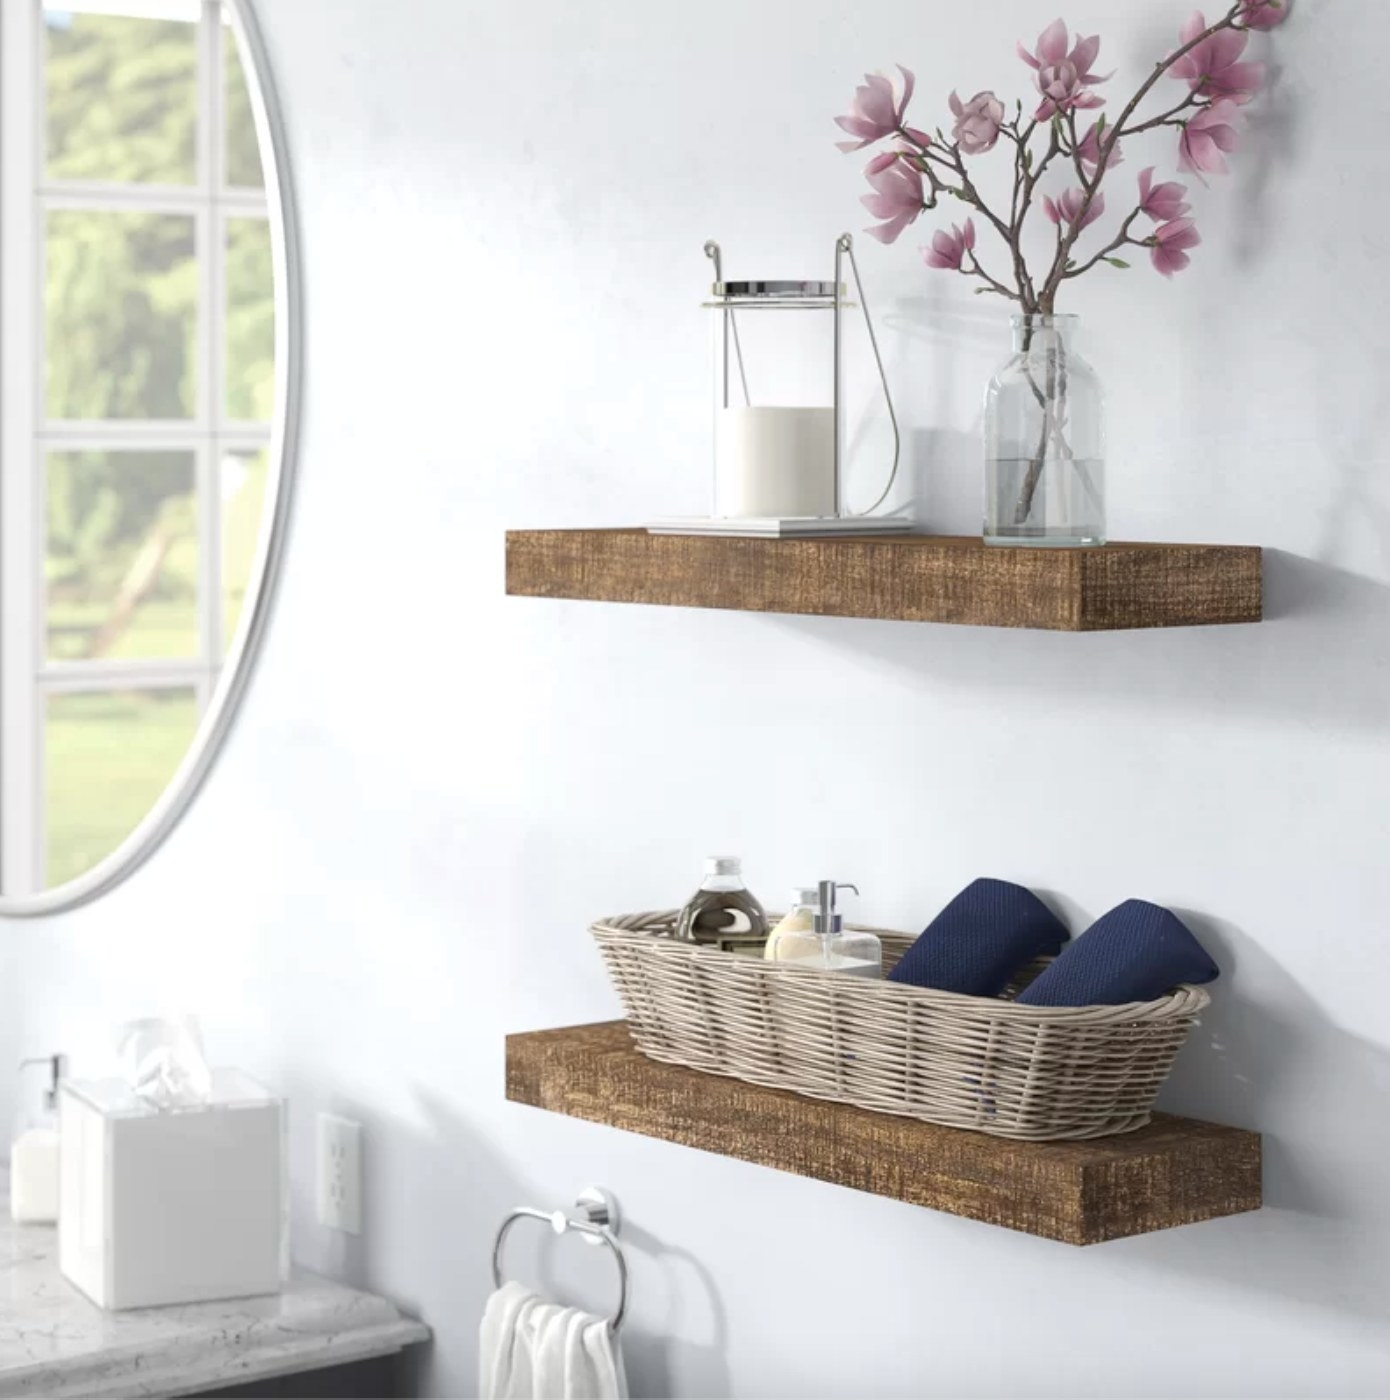 The two-piece set of solid wood floating shelves in dark walnut holding towels, candles, and a vase of flowers